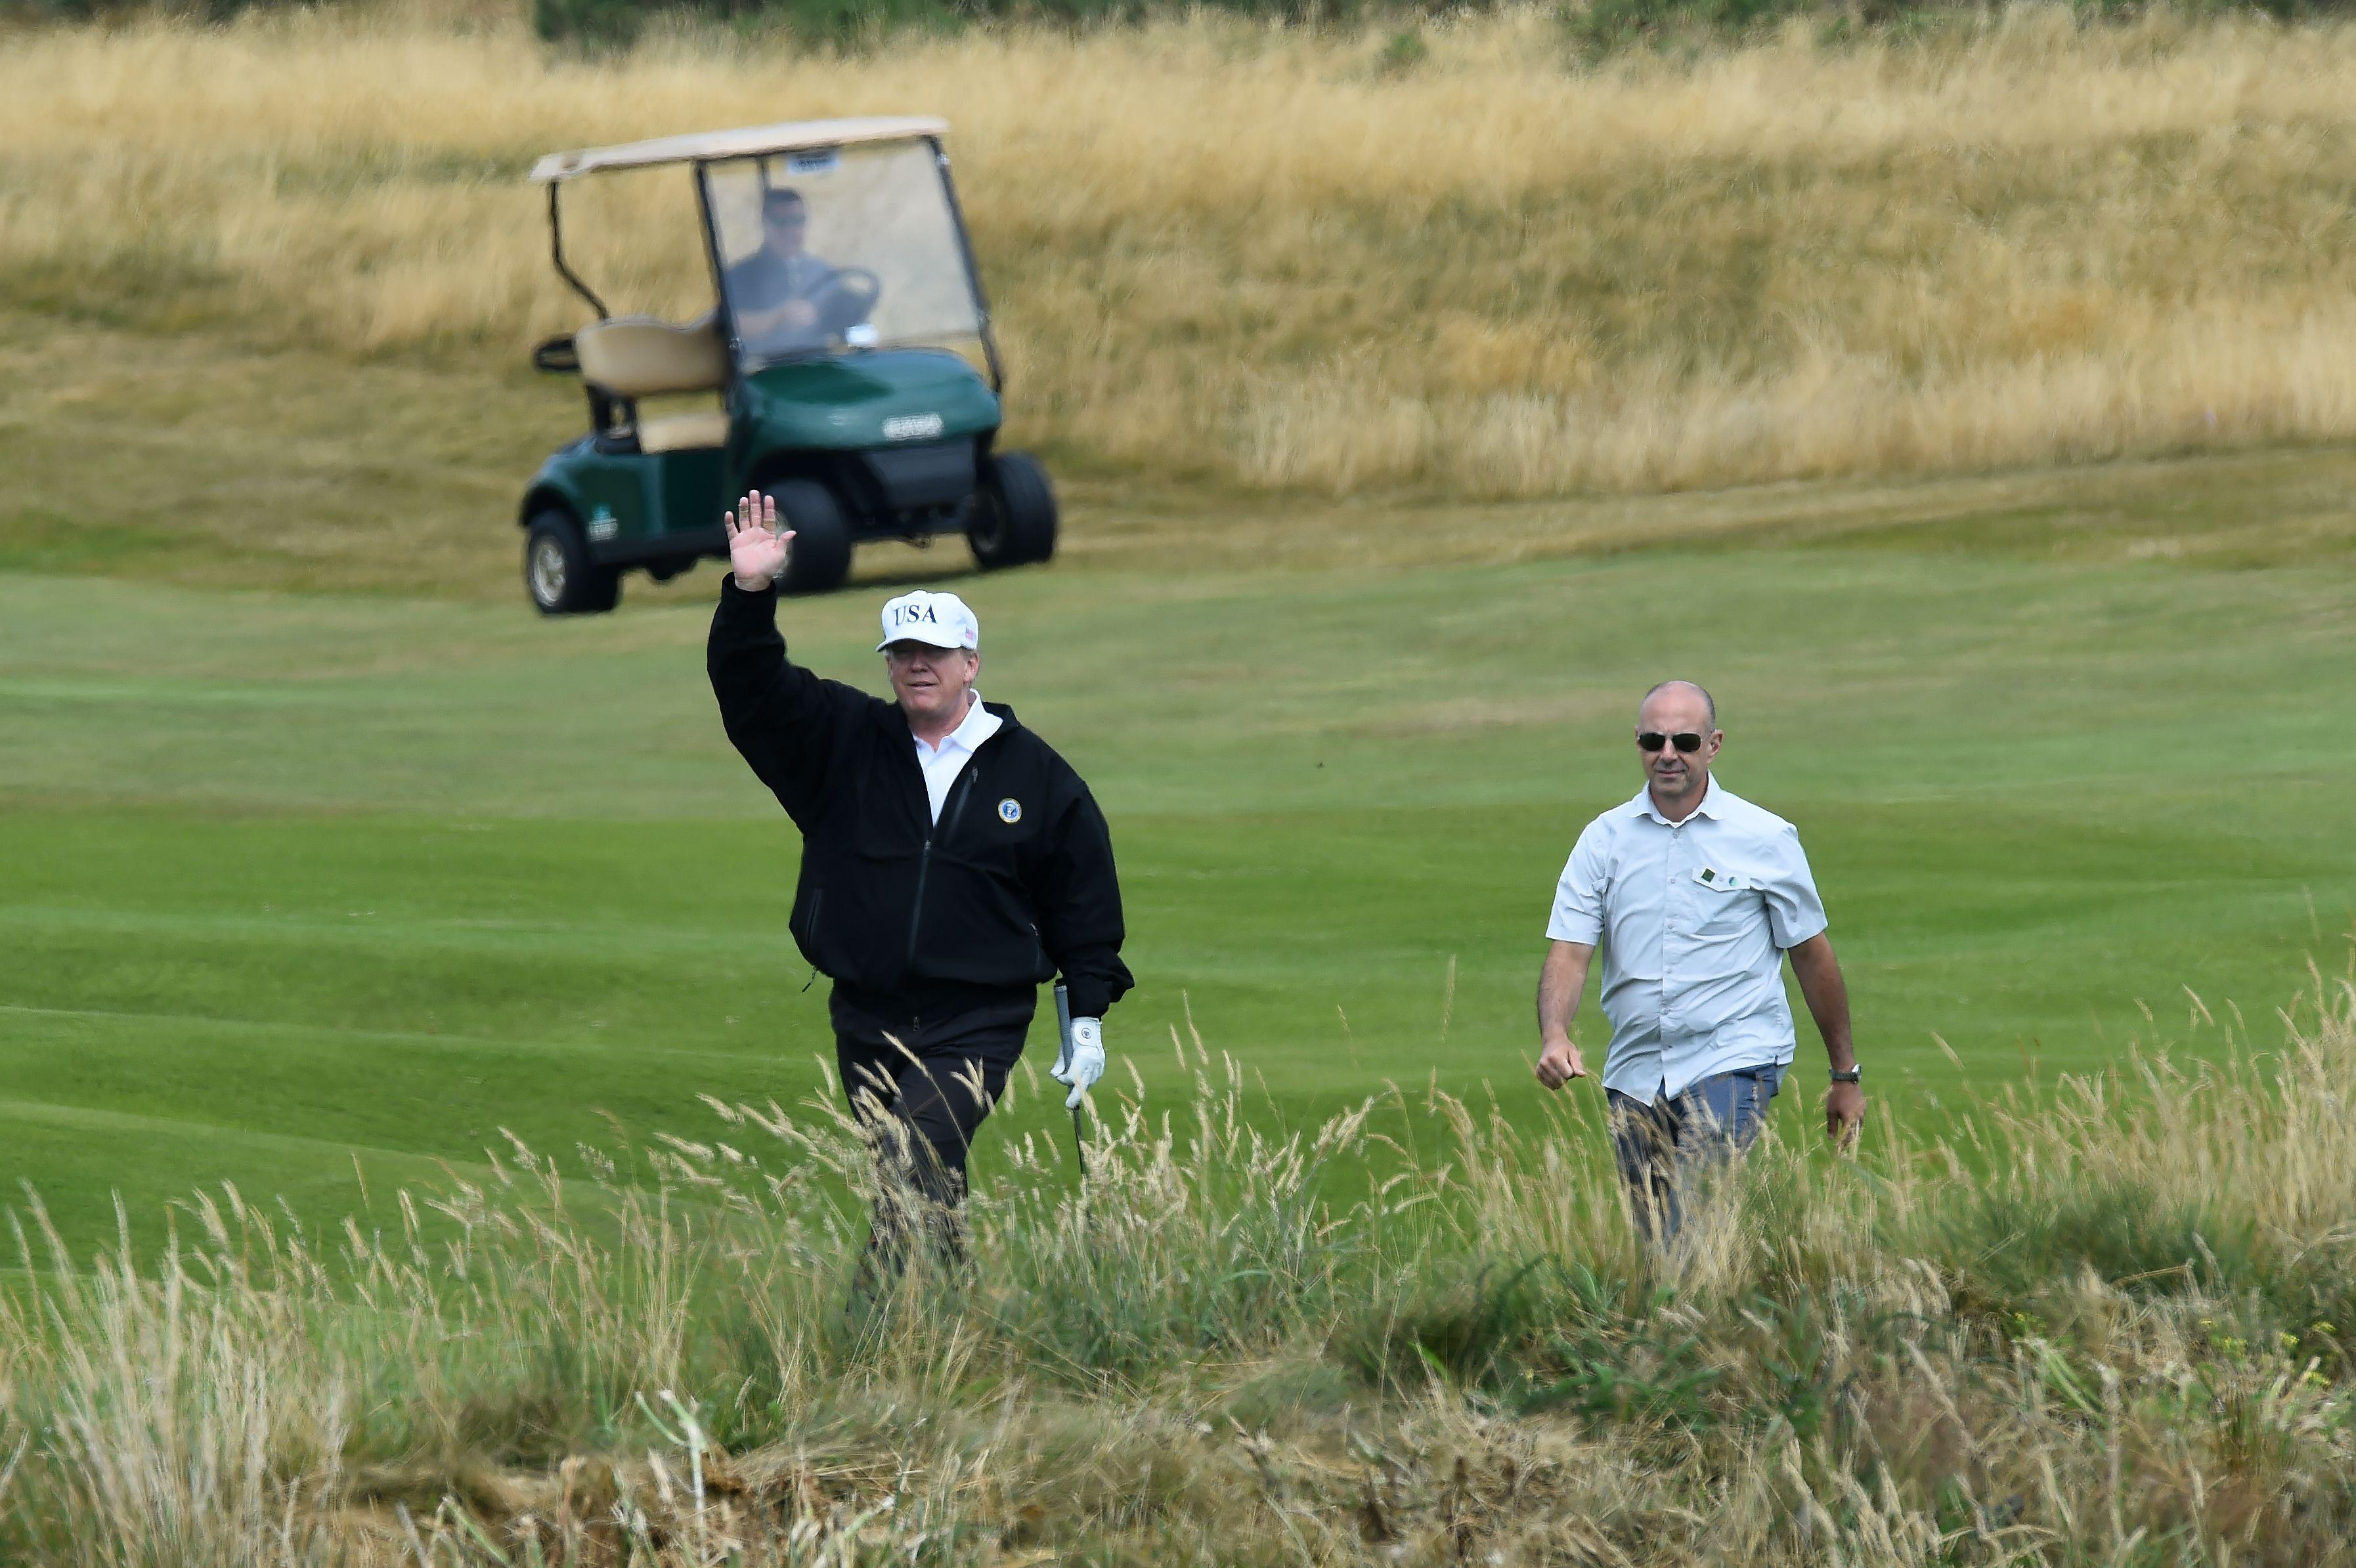 President Donald Trump gestures as he plays a round of golf on the Ailsa course at Trump Turnberry, the luxury golf resort of US President Donald Trump, in Turnberry, southwest of Glasgow, Scotland on July 14, 2018.